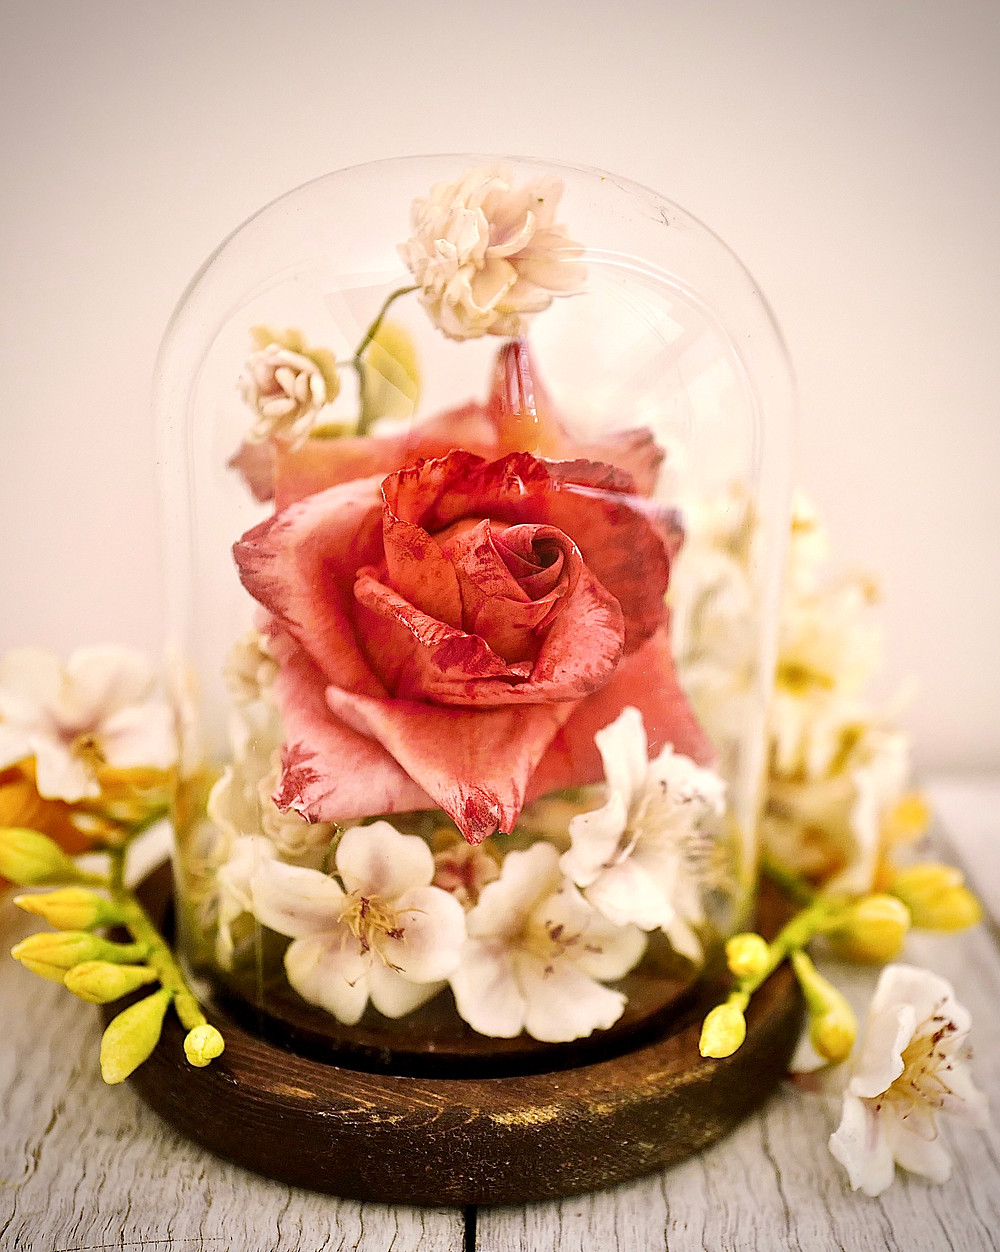 Sugar flowers in a glass cloche or bell jar